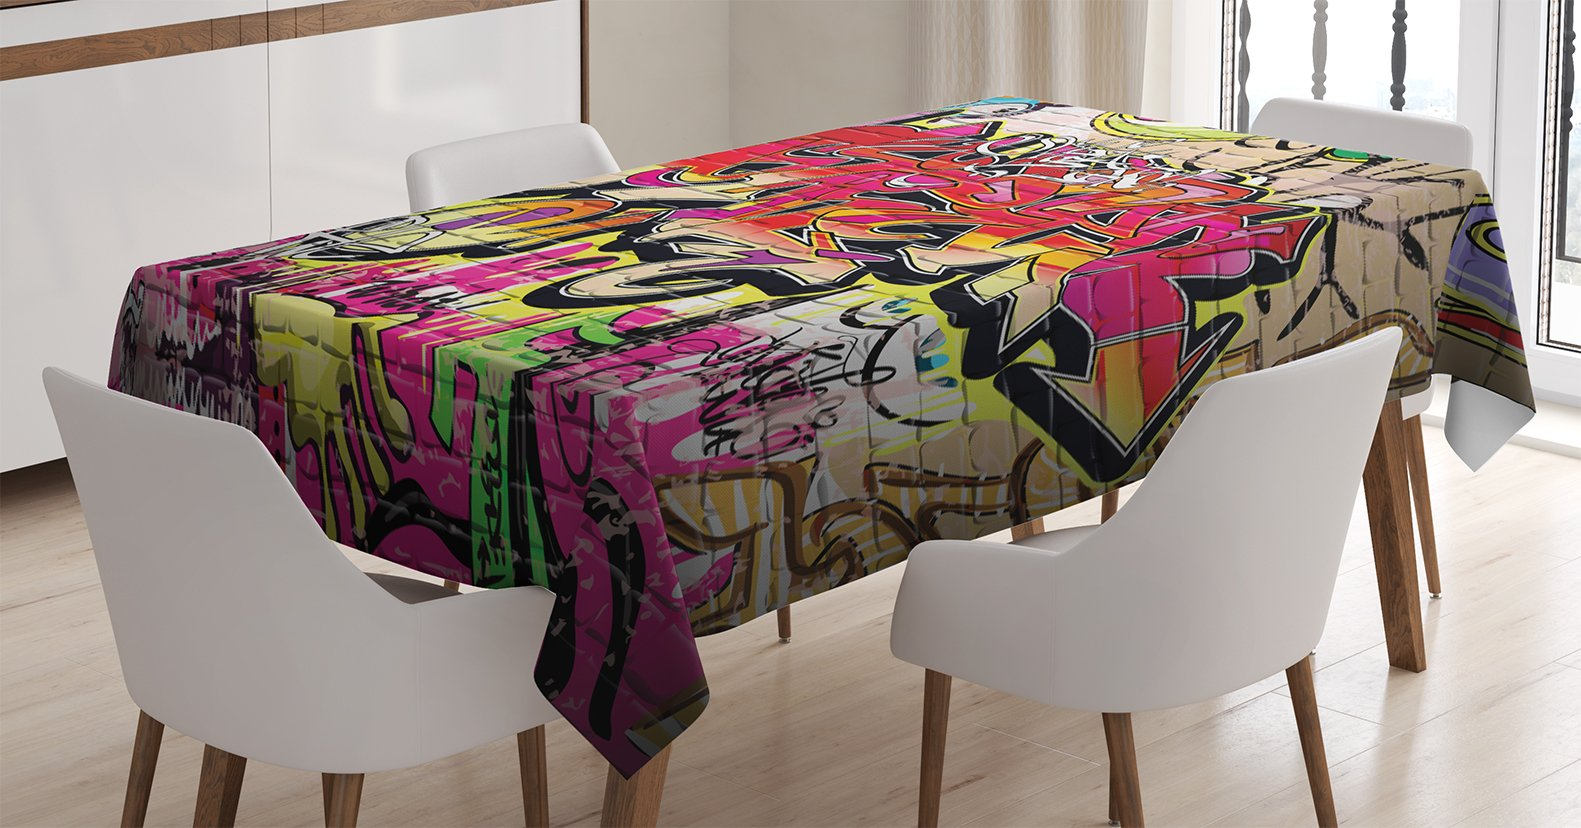 Ambesonne Rustic Home Decor Tablecloth by, Graffiti on Wall Urban Street Art with Spray Paint Tagger Underground Theme, Dining Room Kitchen Rectangular Table Cover, 60W X 84L Inches, Multi